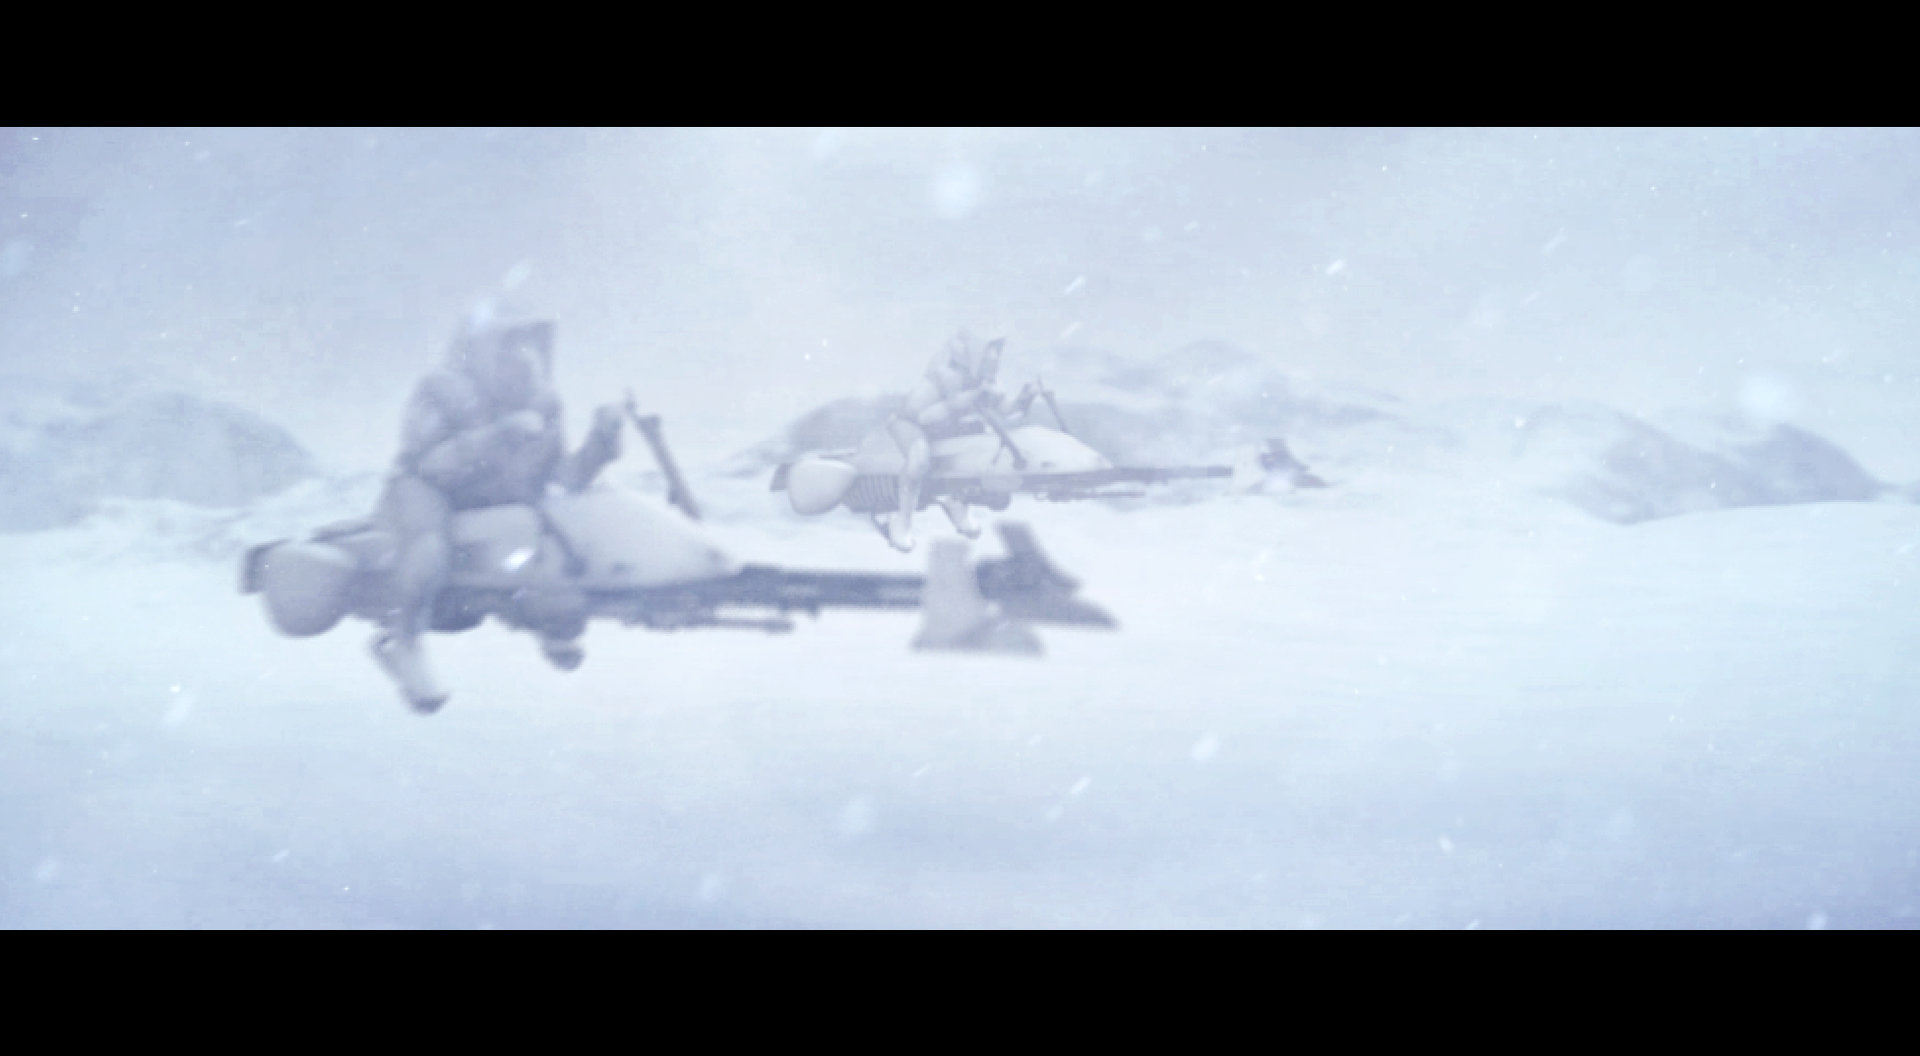 Paul massey hoth speederbikes test 01